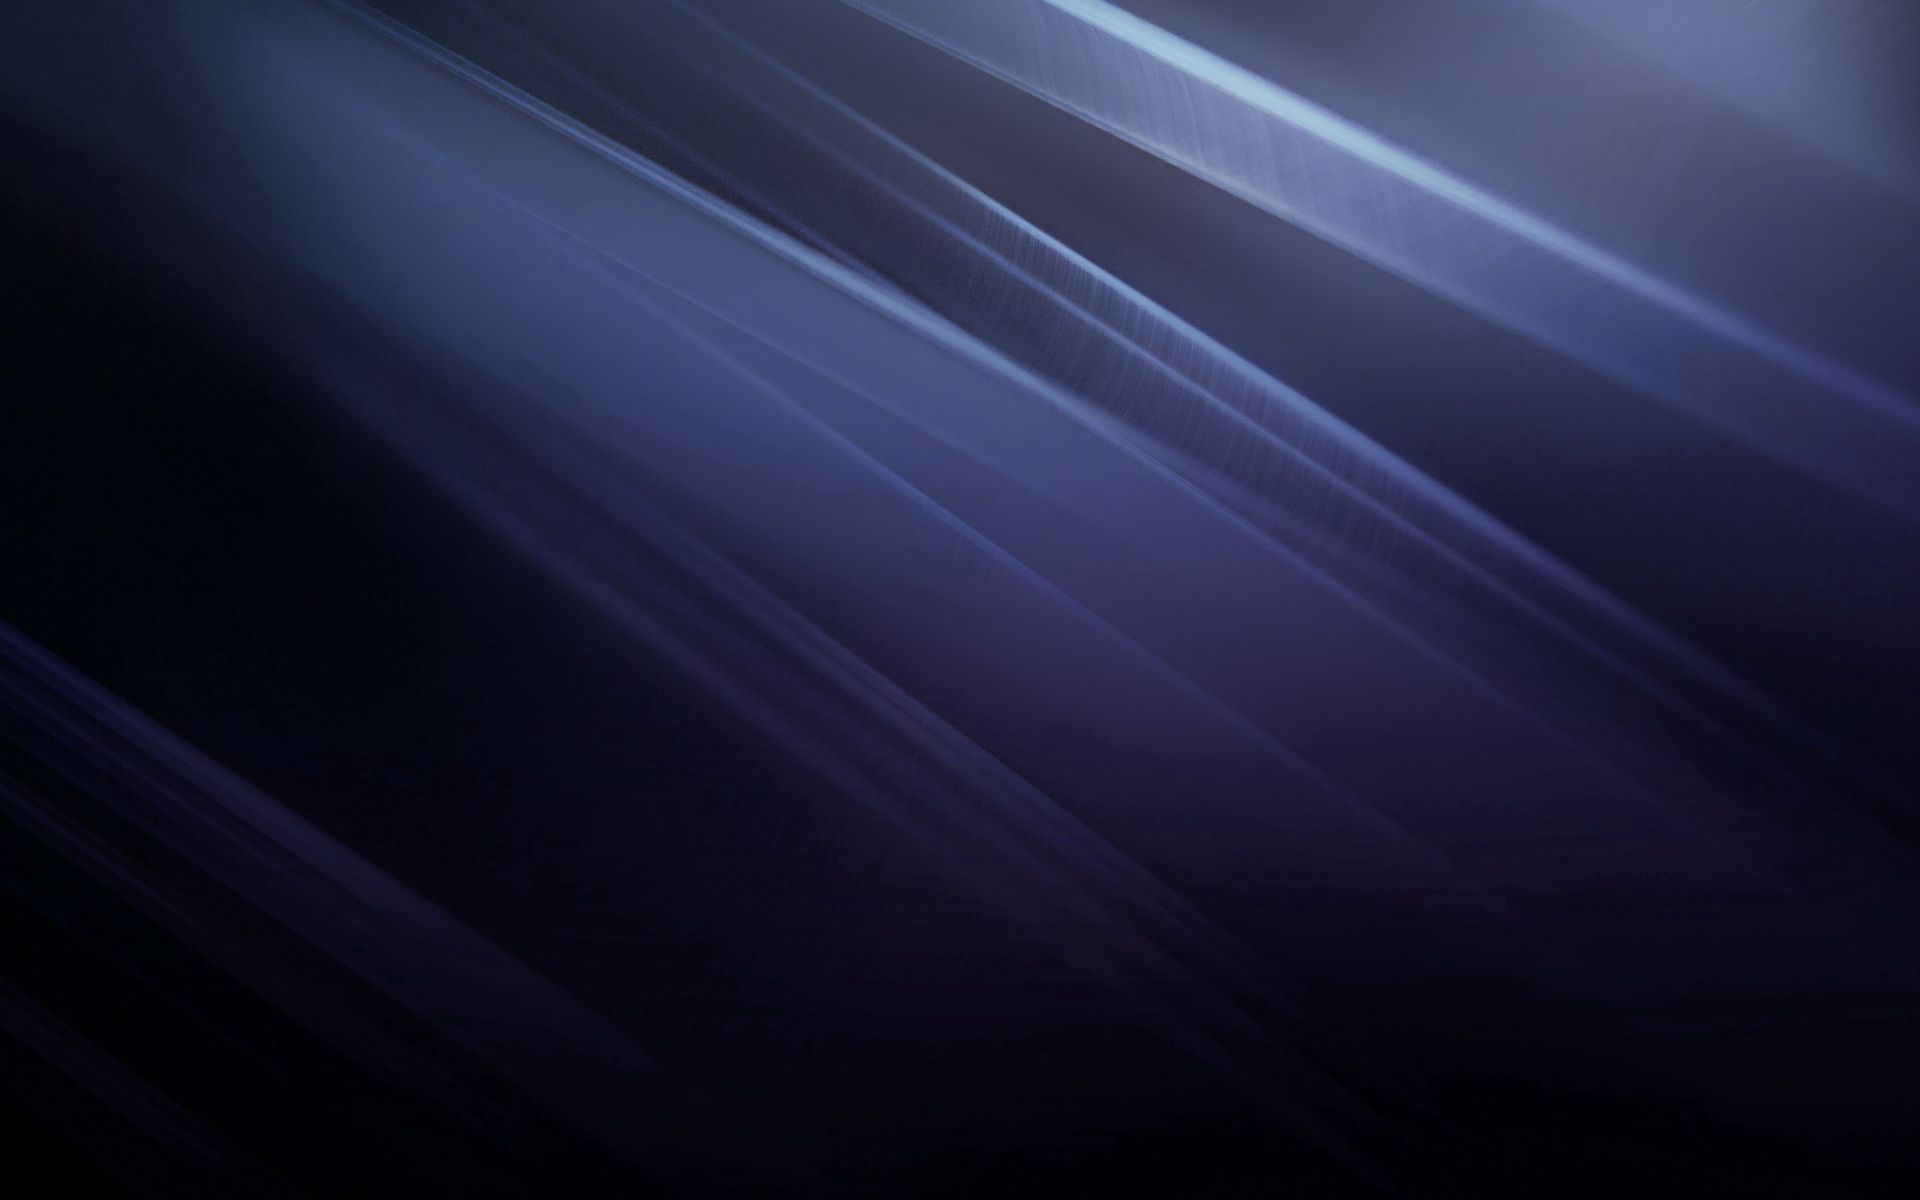 60449 download wallpaper Abstract, Dark, Lines, Shroud screensavers and pictures for free